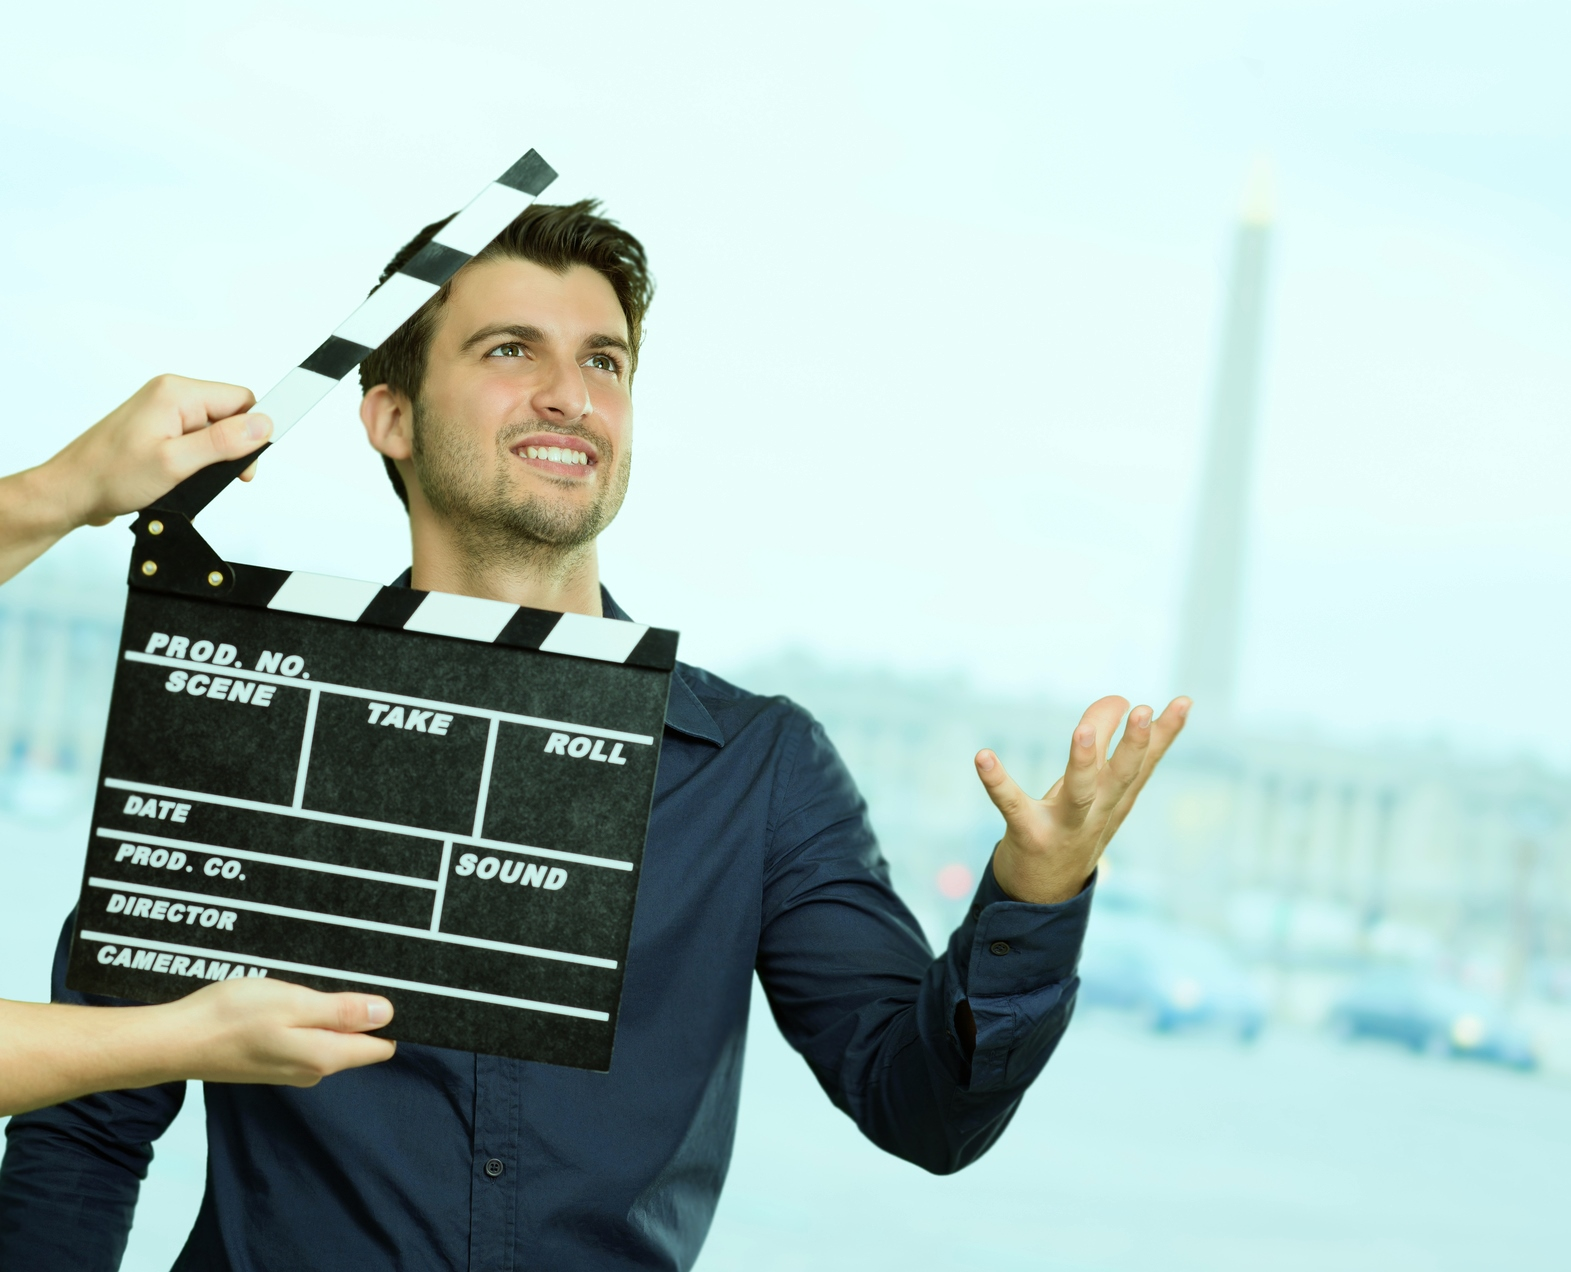 Director Clapping The Clapper Board